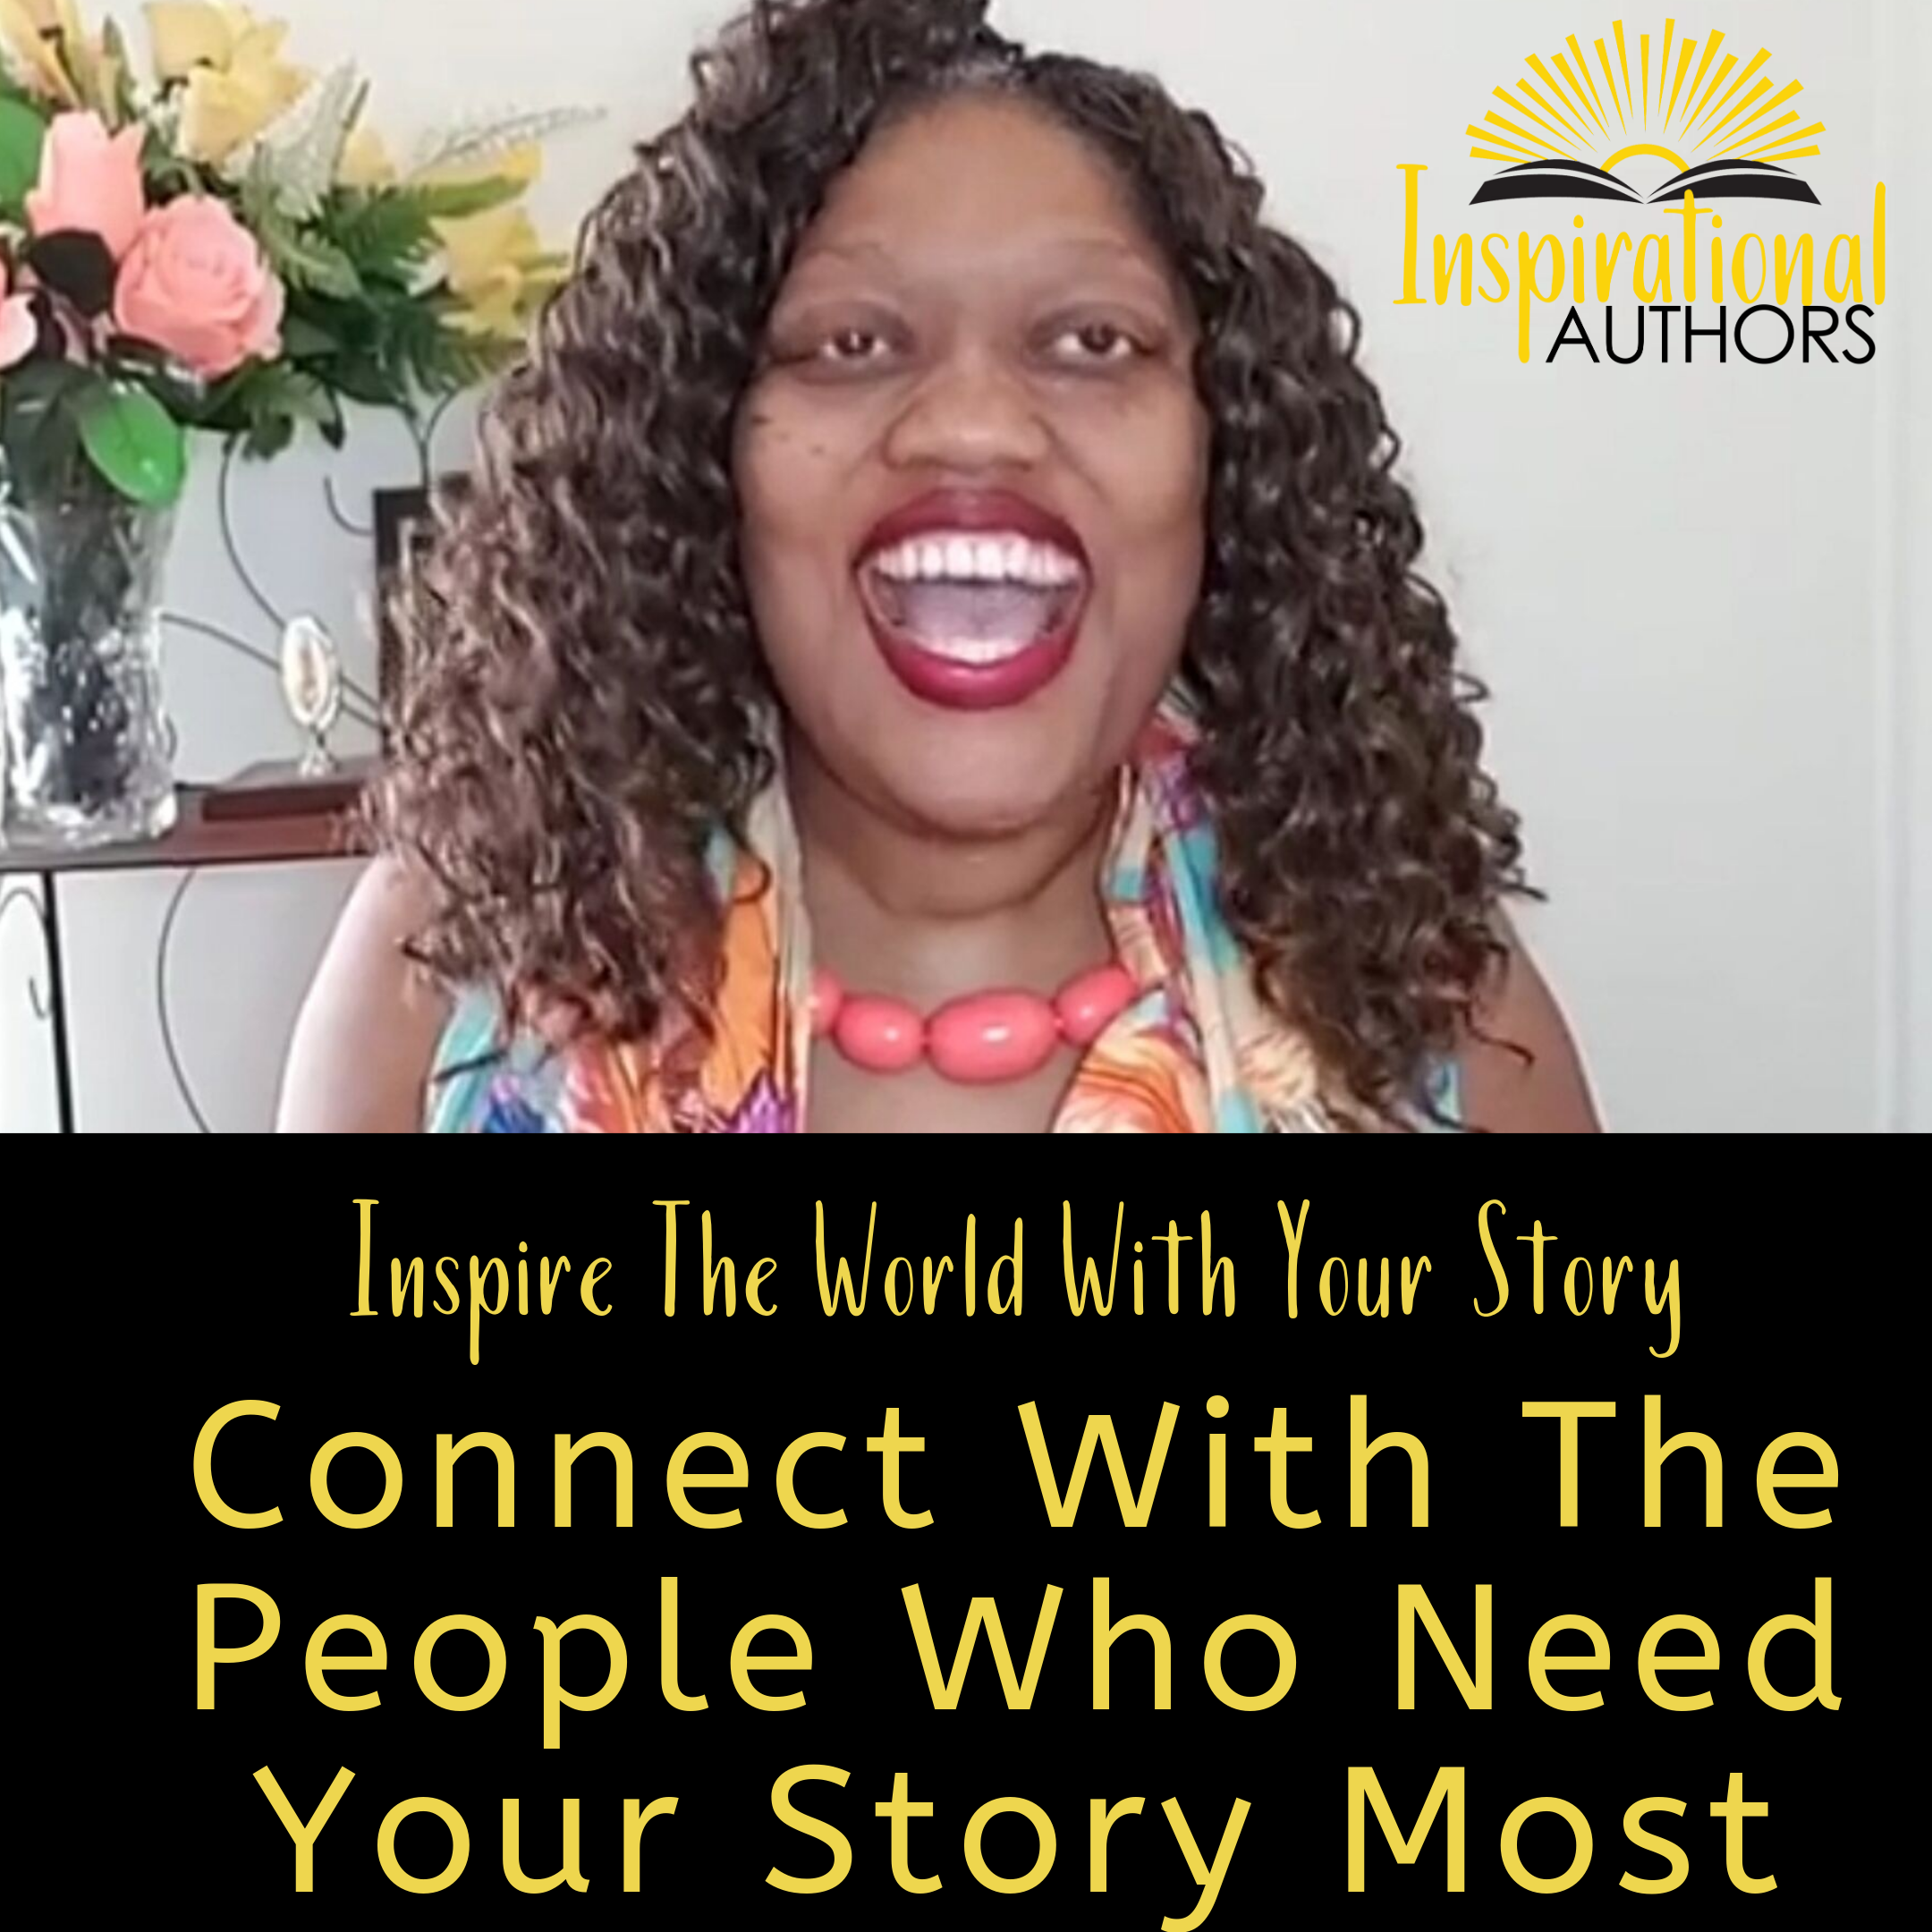 Inspire The World With Your Story (part 2): How To Connect With The People Who Need Your Story The Most